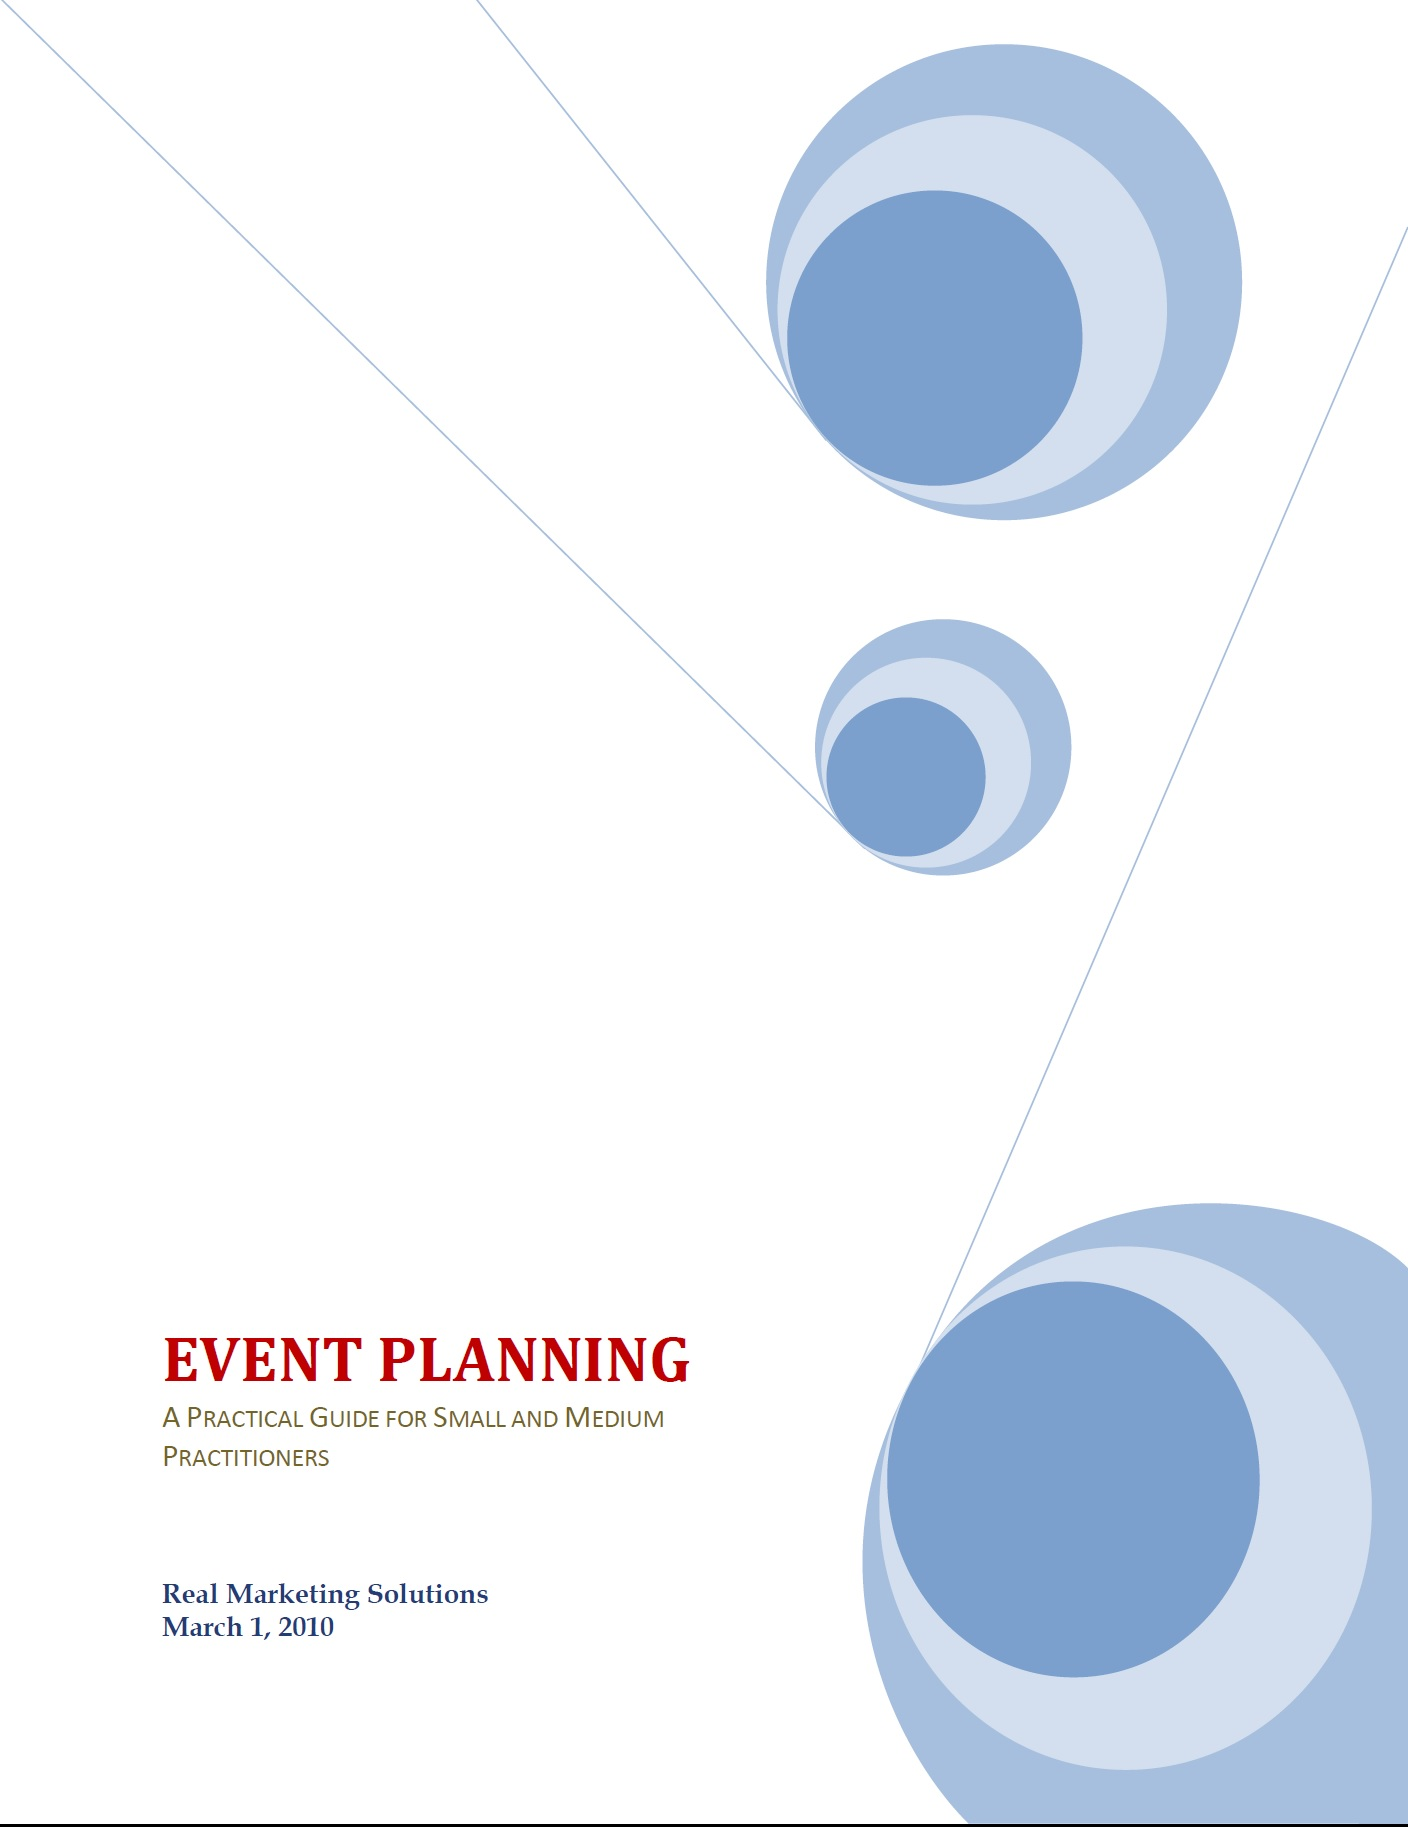 Cover of guide with blue circles on white background